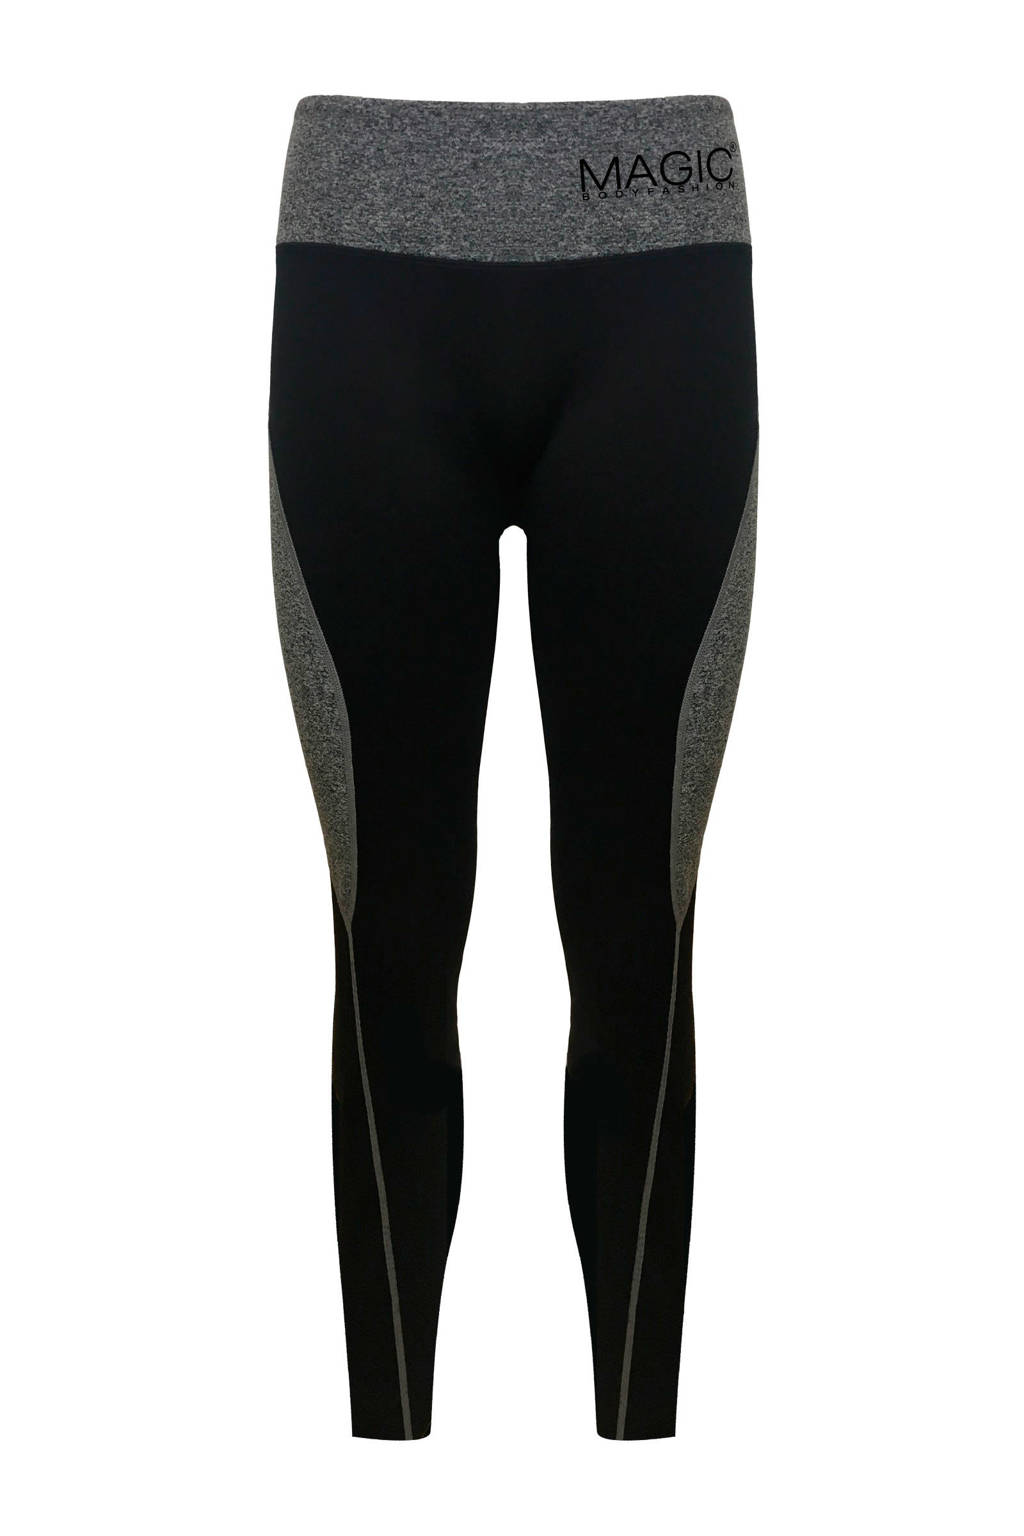 Corrigerende Sportlegging.Magic Bodyfashion Corrigerende Sport Legging Wehkamp